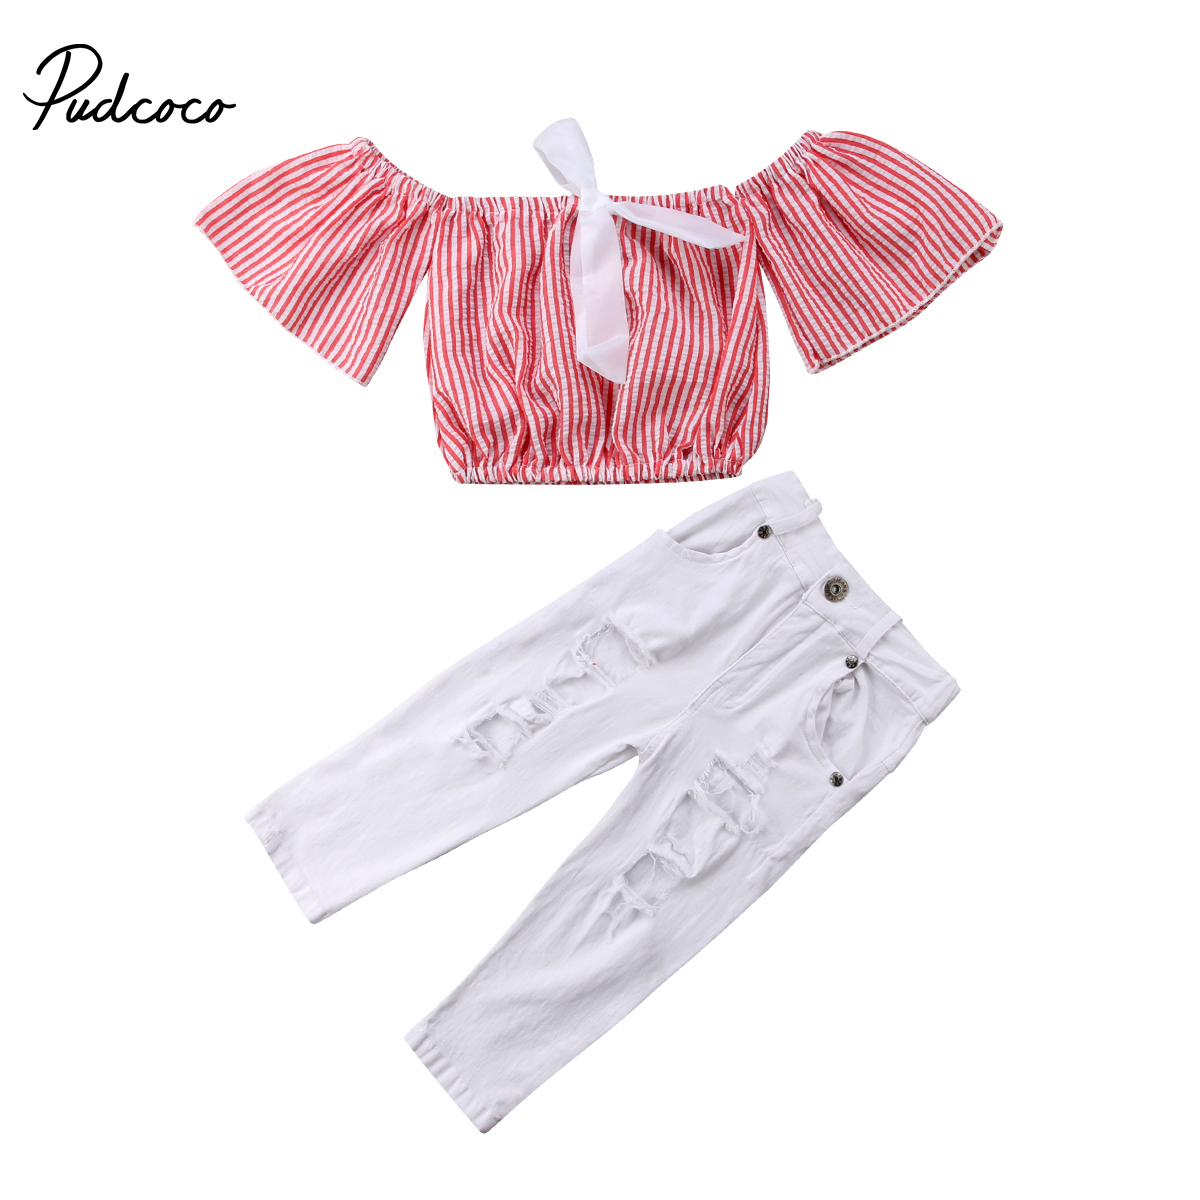 Pudcoco Newborn Kid Baby Girls Striped Off Shoulder Tops Lace Holes Pants Outfits Set 1-6 Years Helen115